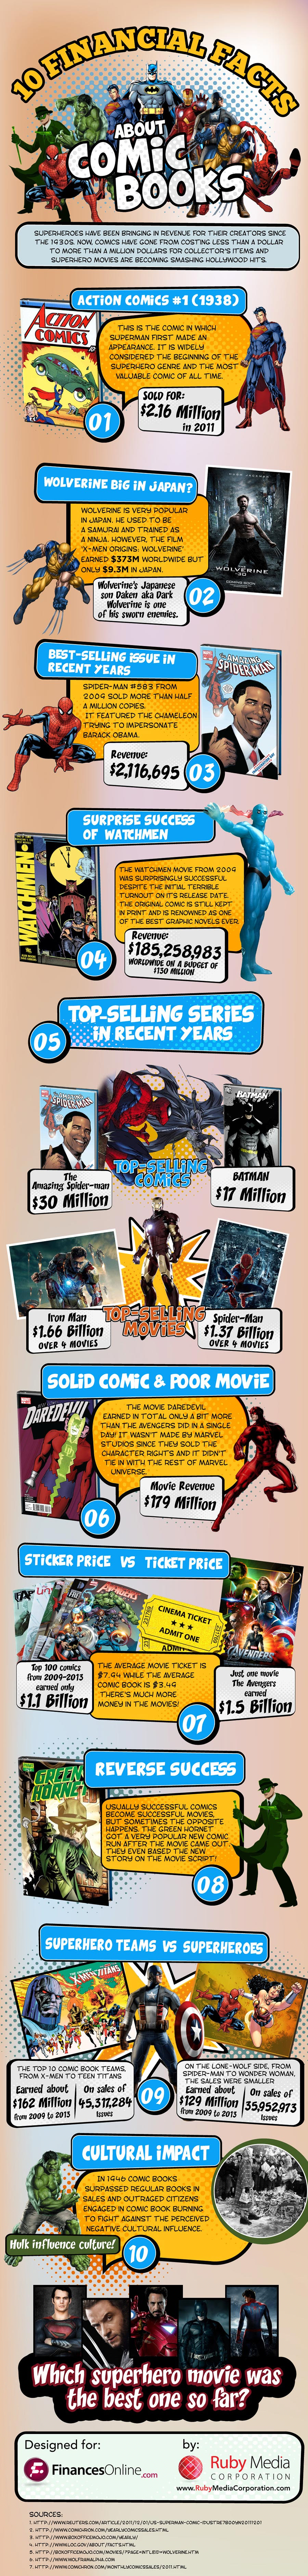 Fun Financial Facts About Comic Books